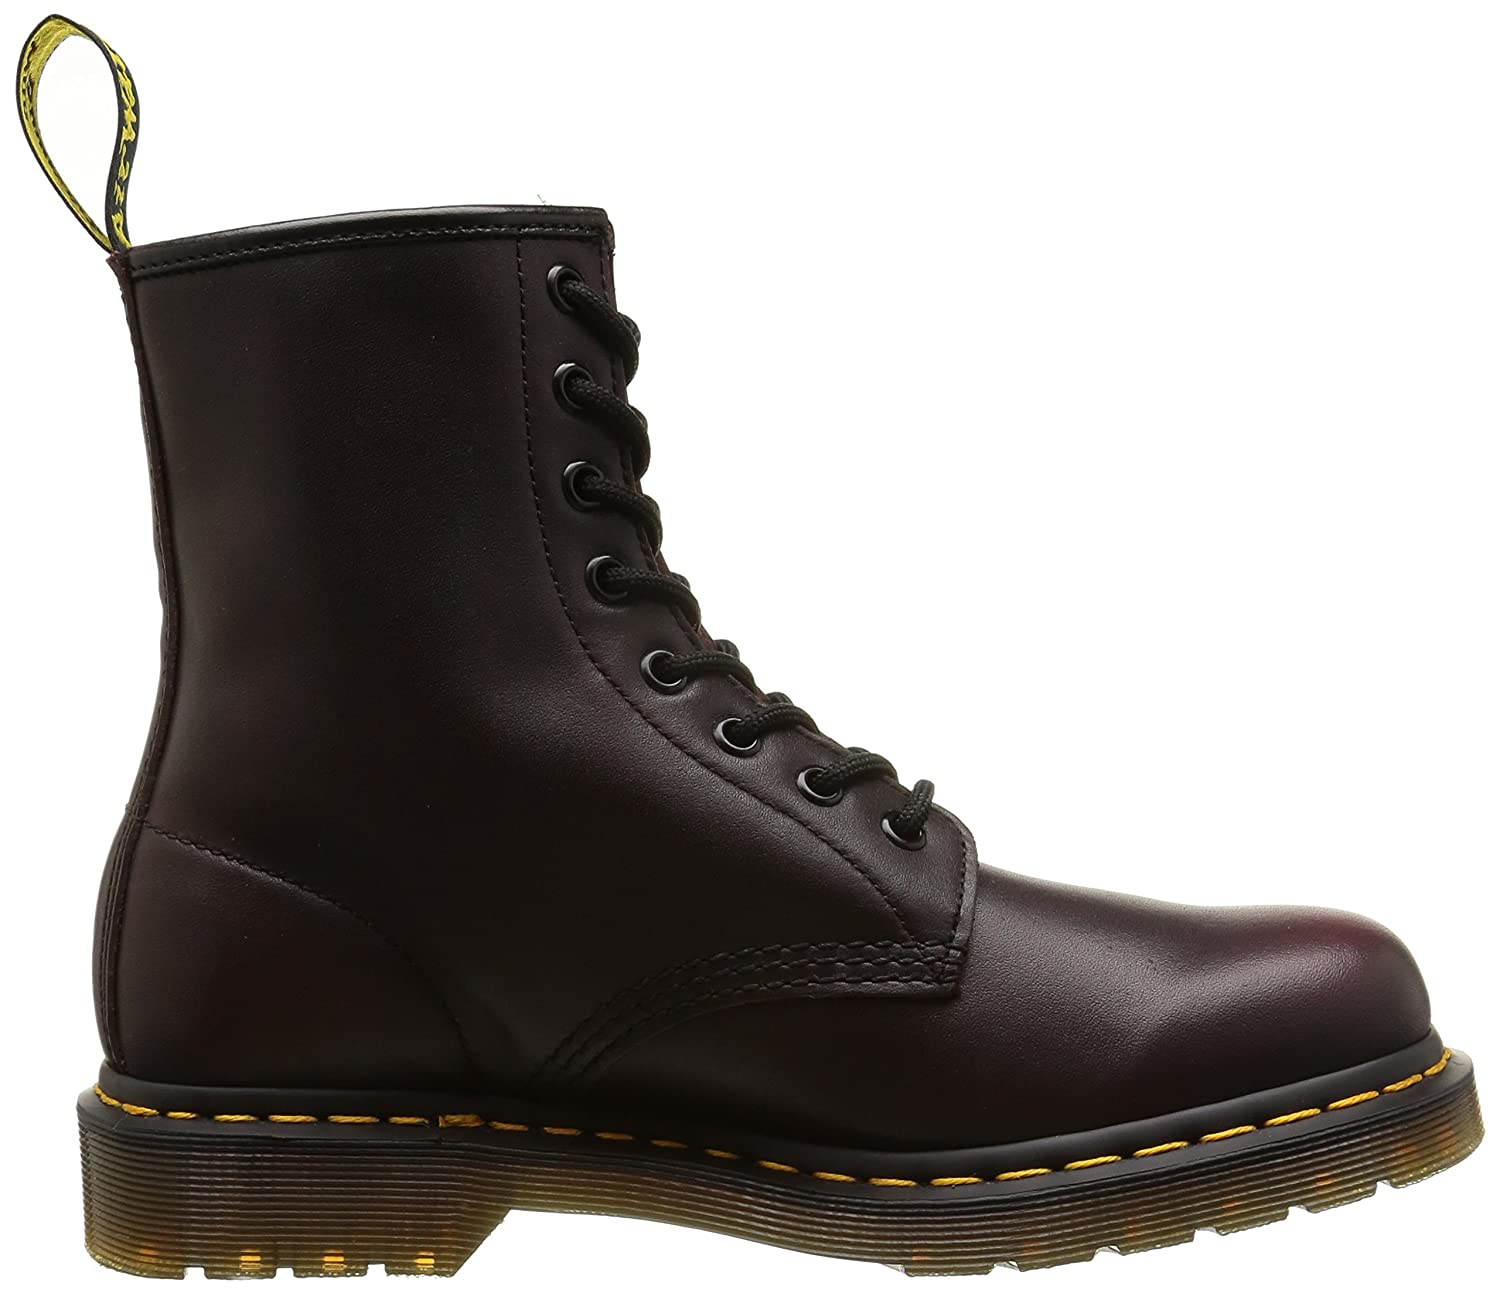 Dr. Martens Women's 1460 Re-Invented Victorian Print Lace Up Boot B004M5I9XE 3 M UK / 5 B(M) US|Red